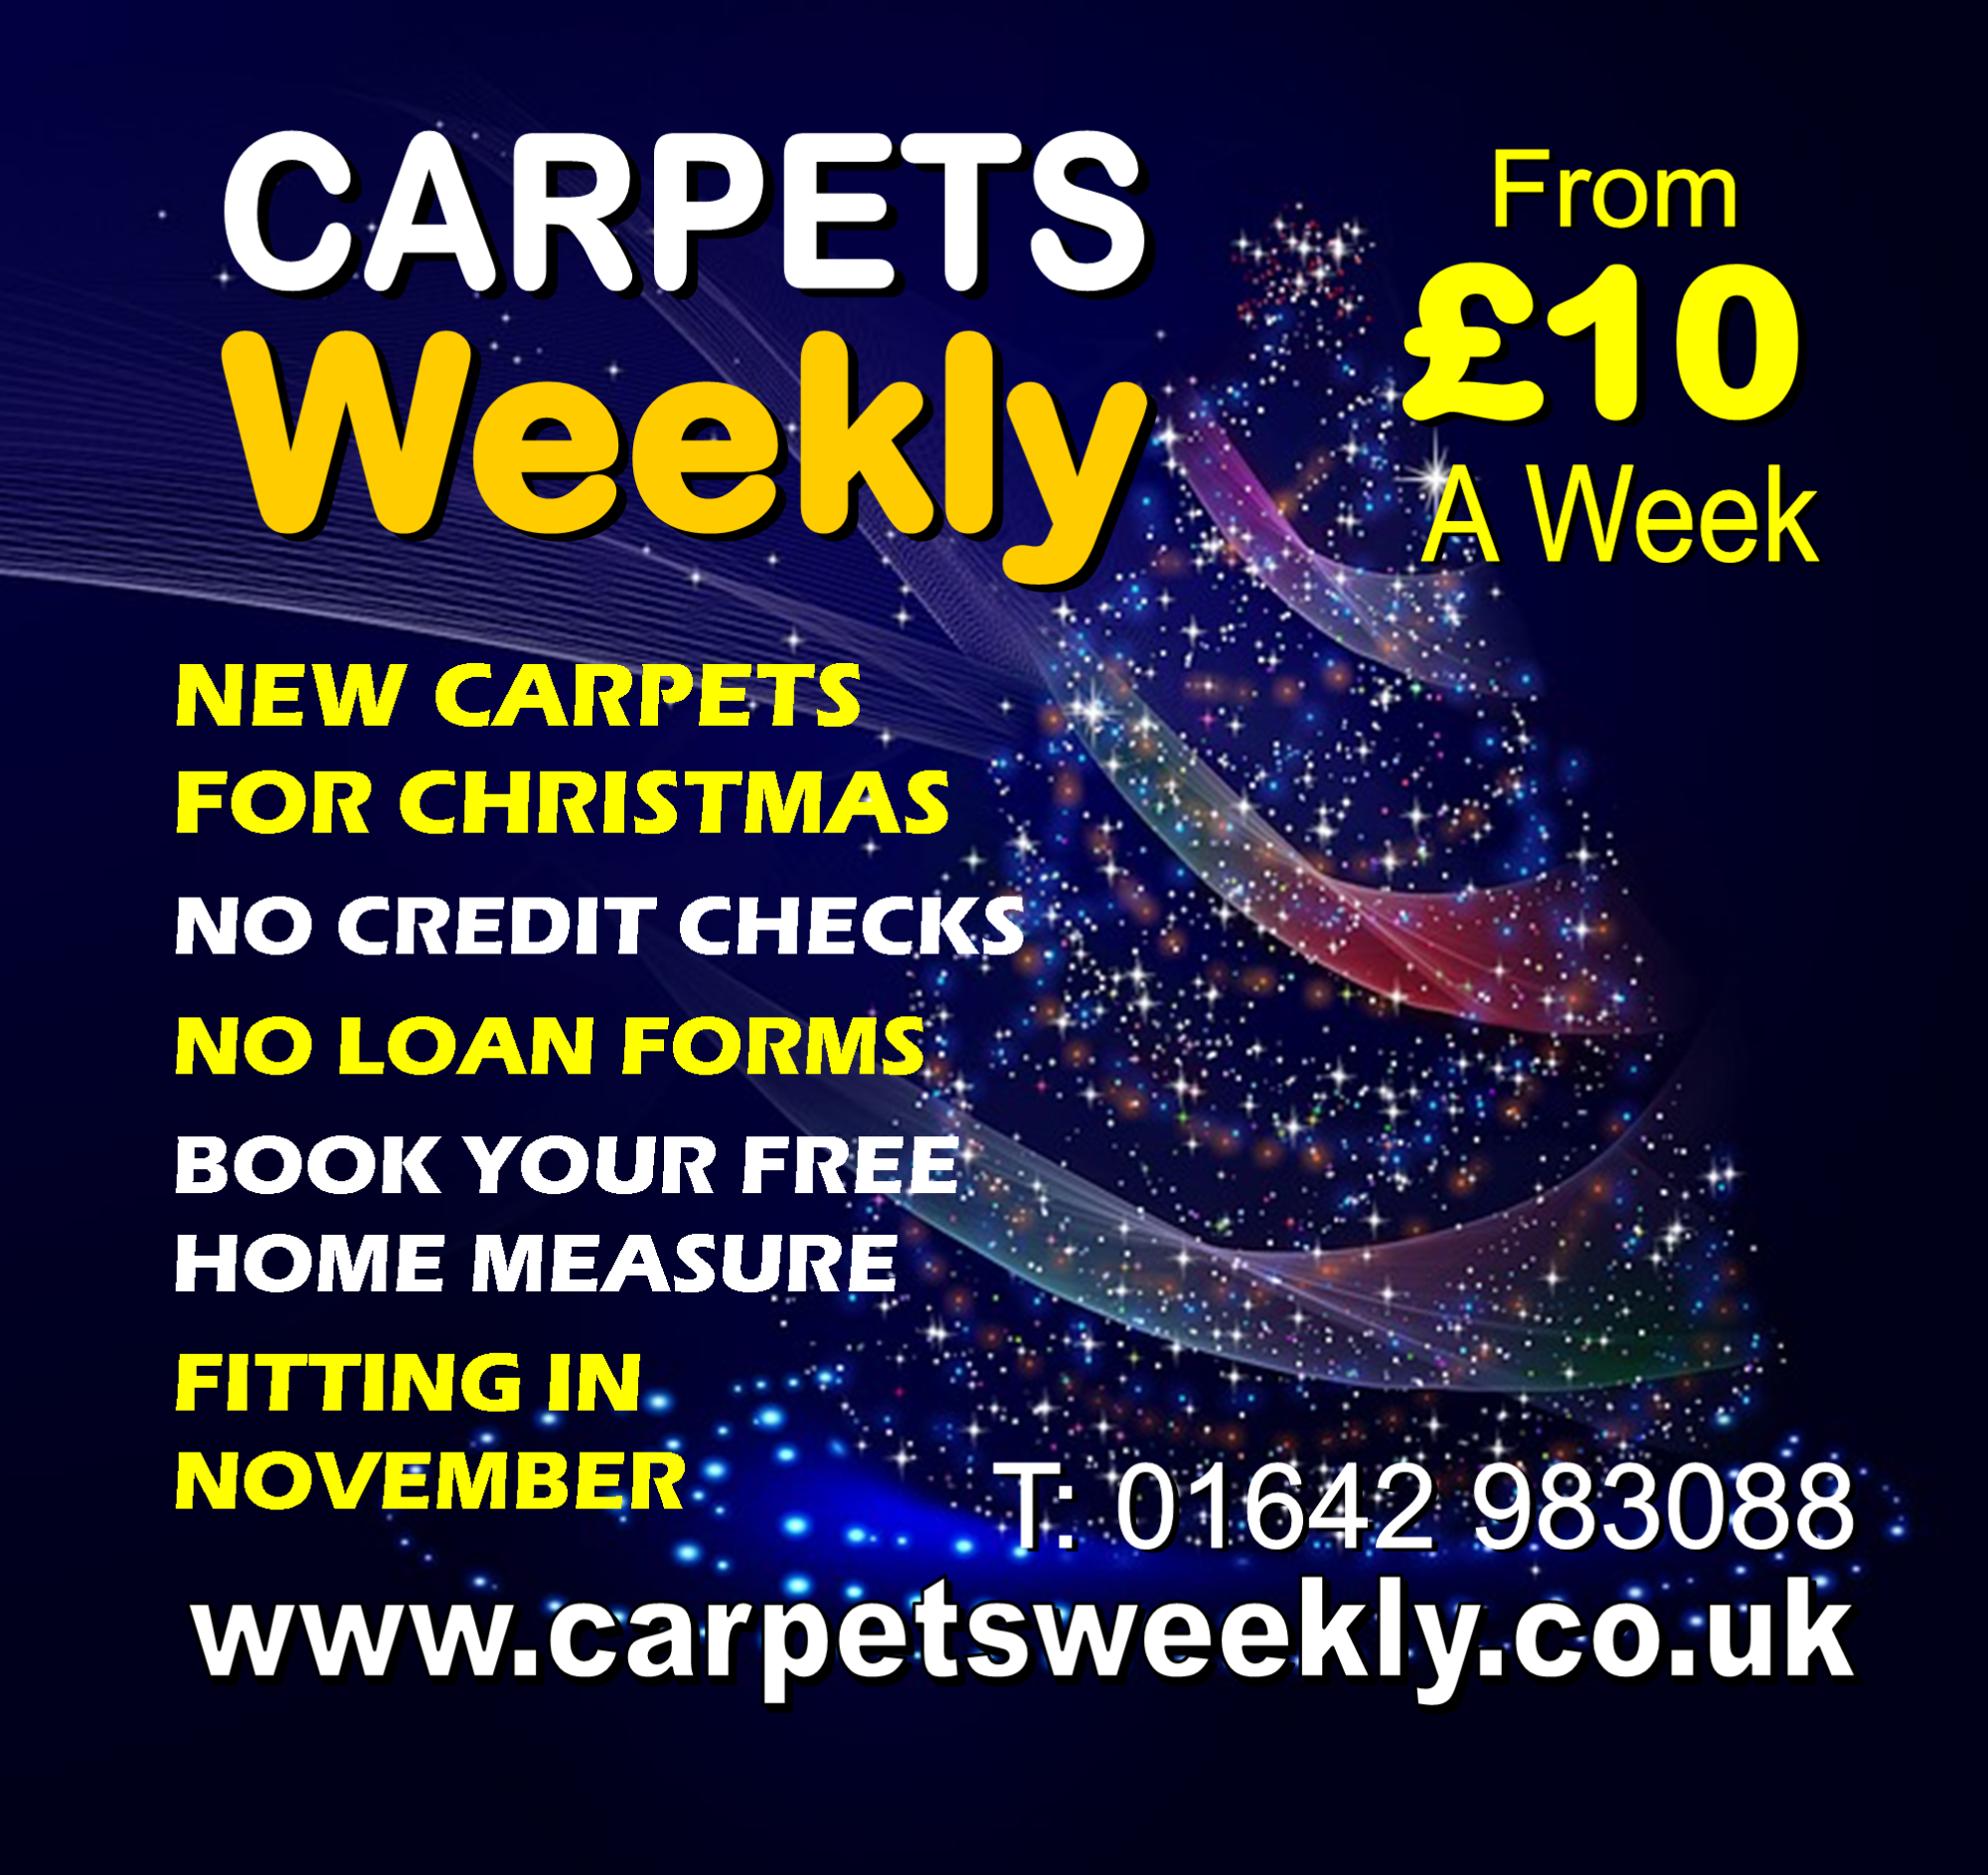 Carpets Weekly this Christmas